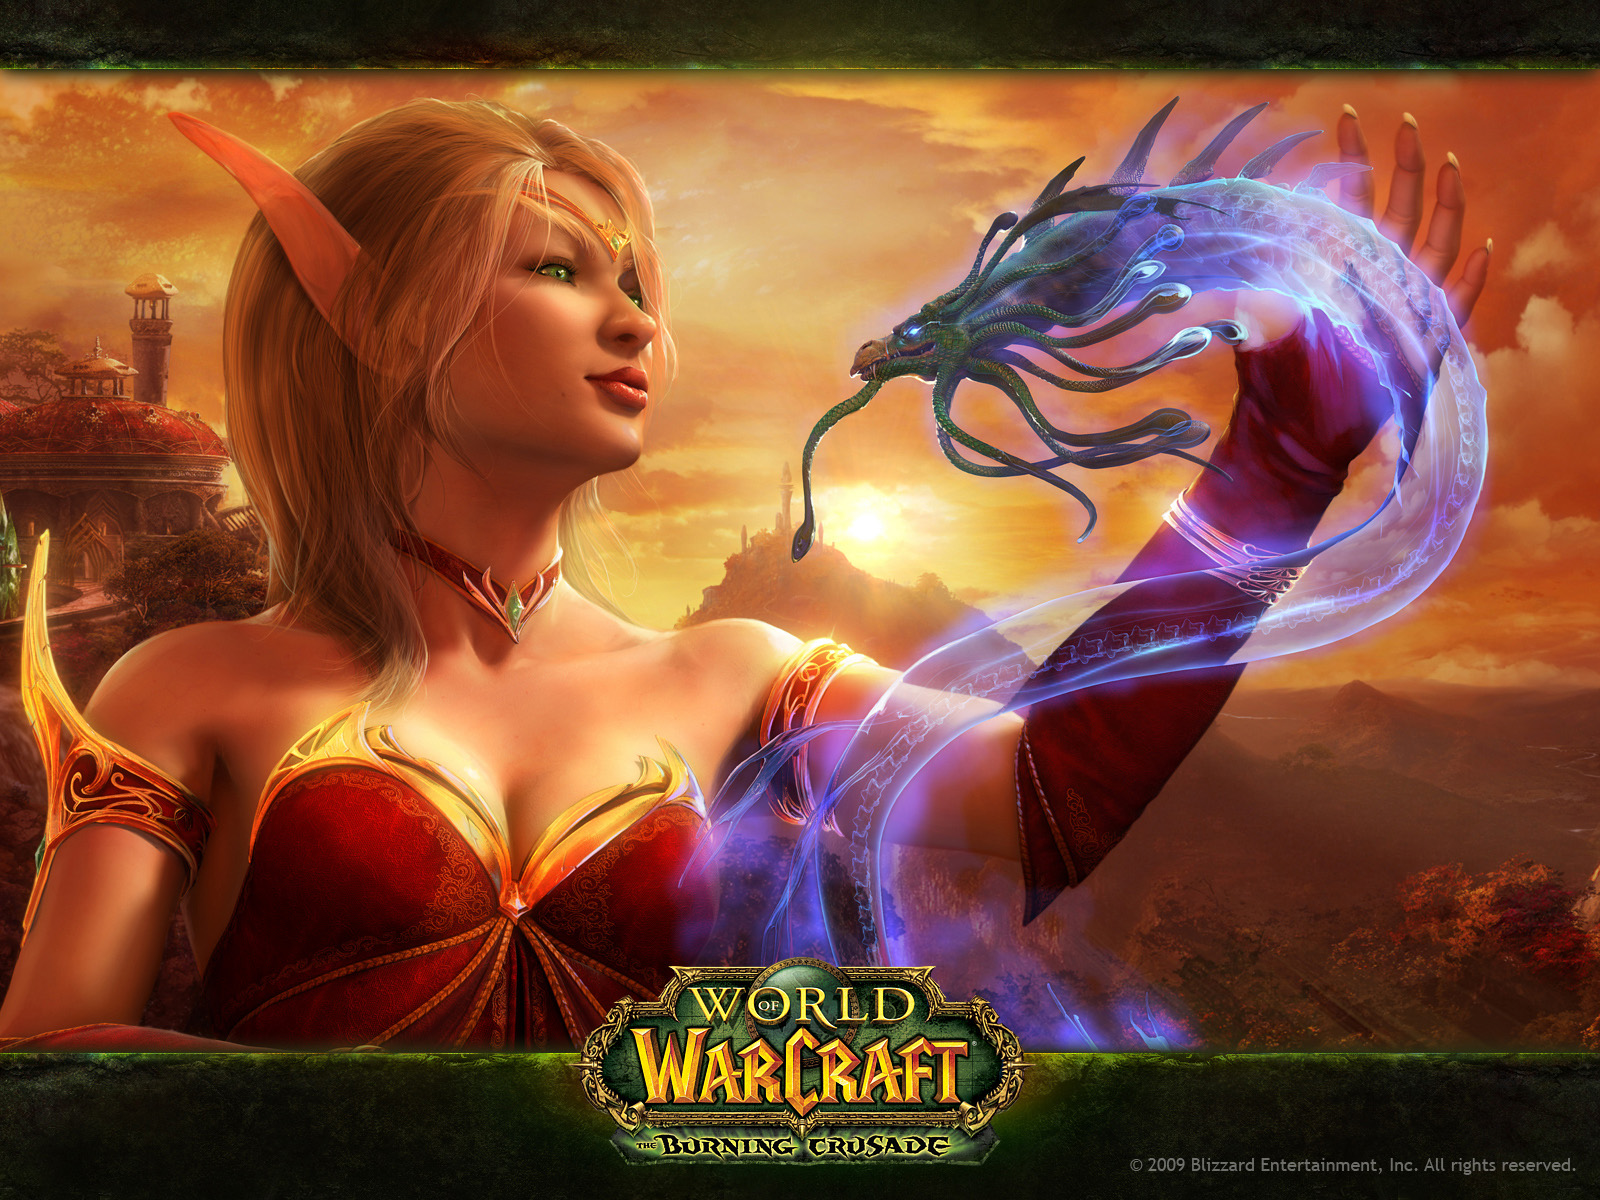 World Of Warcraft Burning Crusade Snake 485.82 Kb